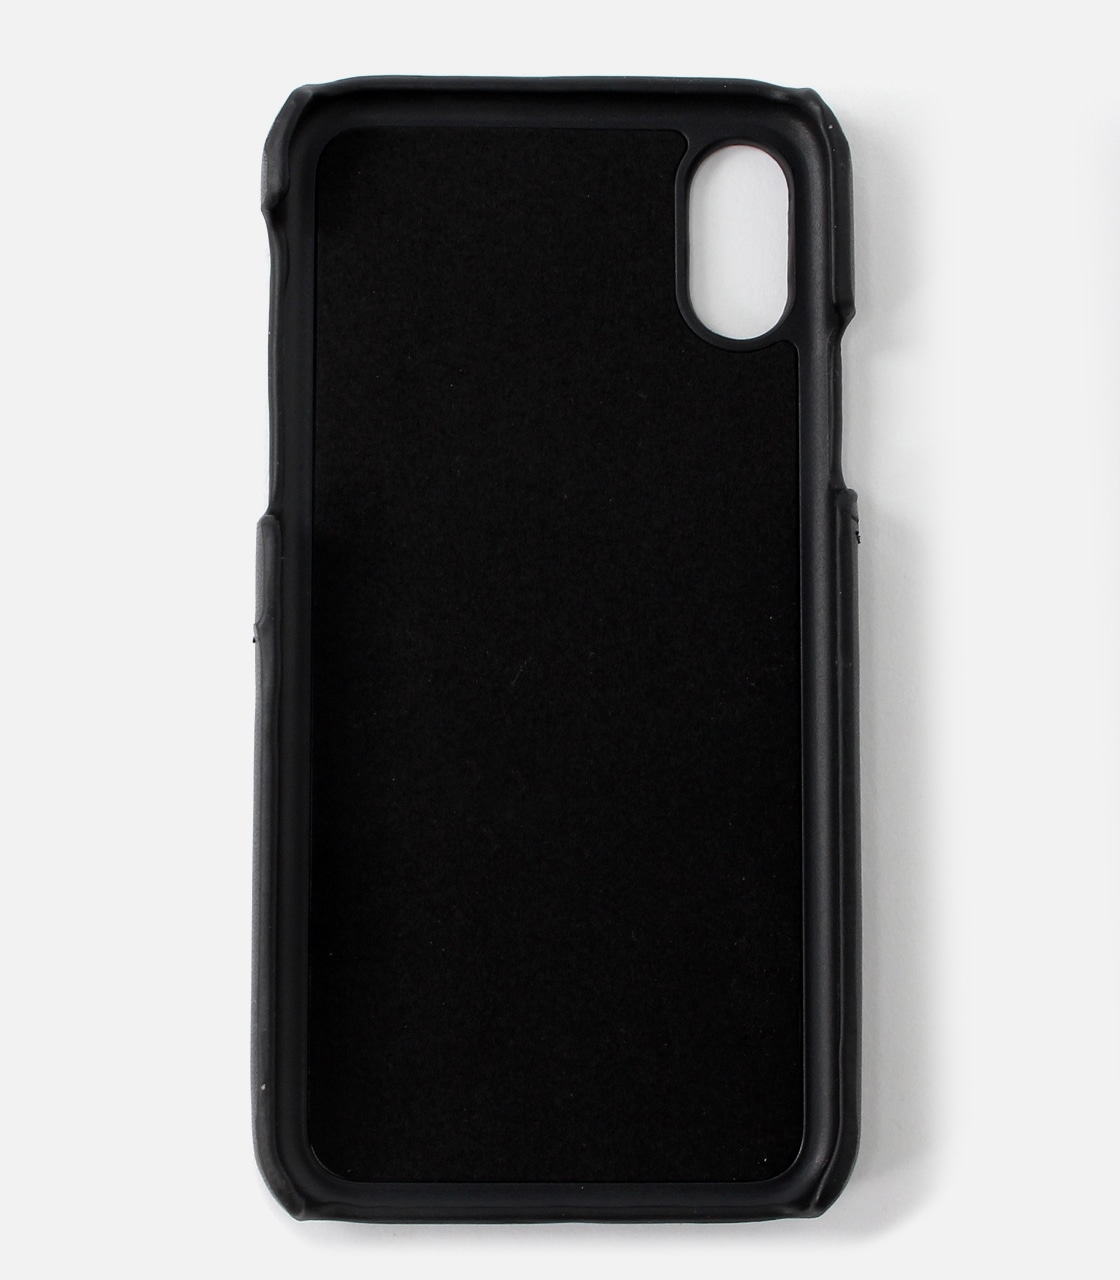 【AZUL BY MOUSSY】BLOCKING PHONE CASE 詳細画像 BLK 2